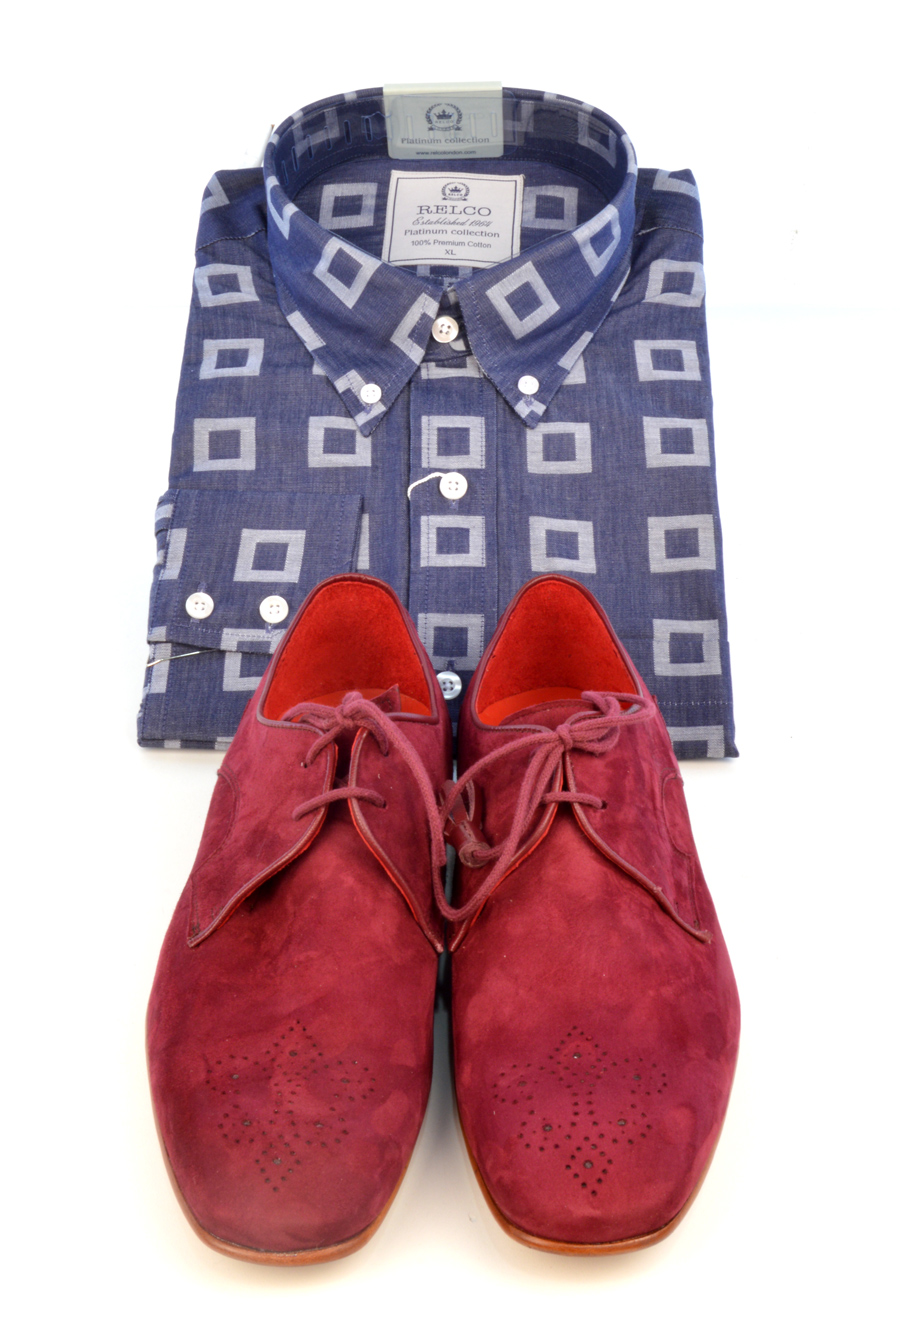 modshoes-blue-shirt-with-jw-wine-coloured-brogue-shoes